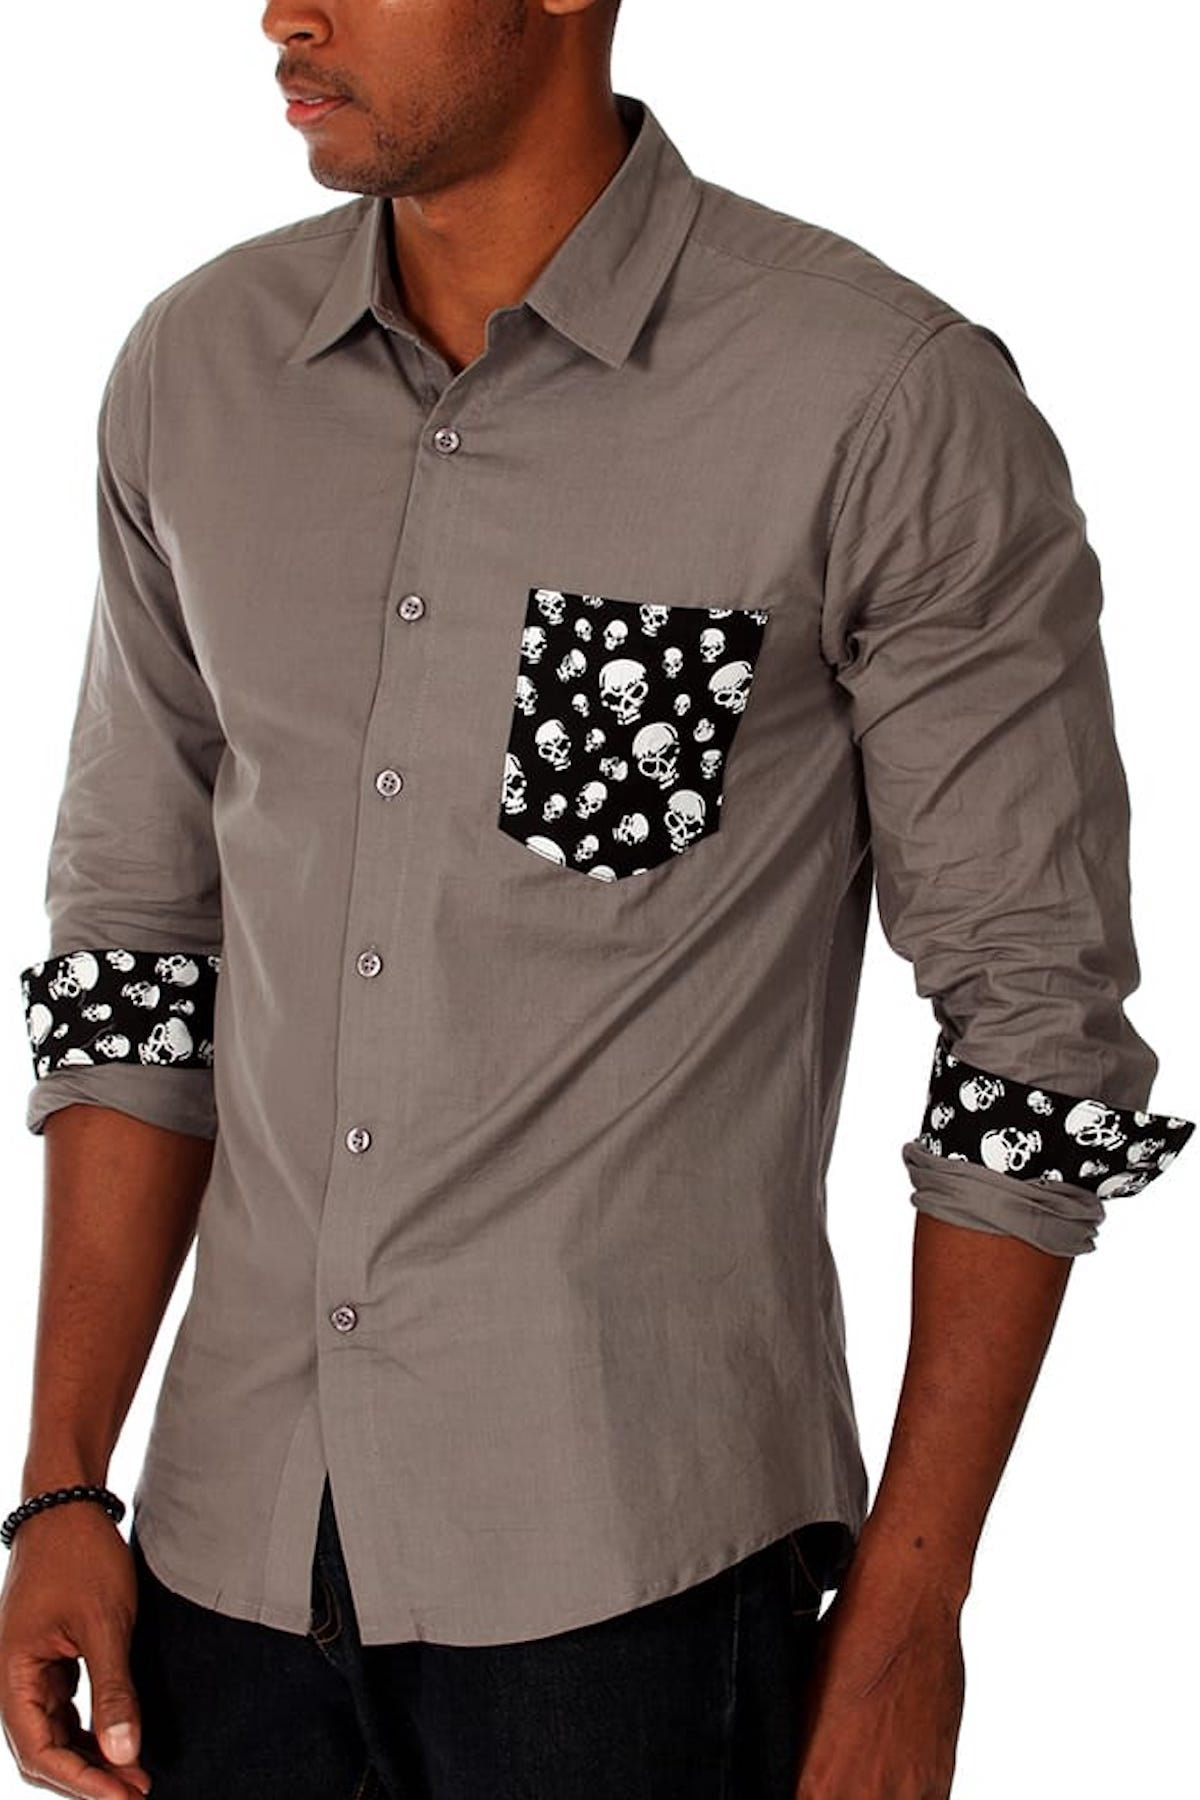 00 Nothing Grey Skullball Button-Up